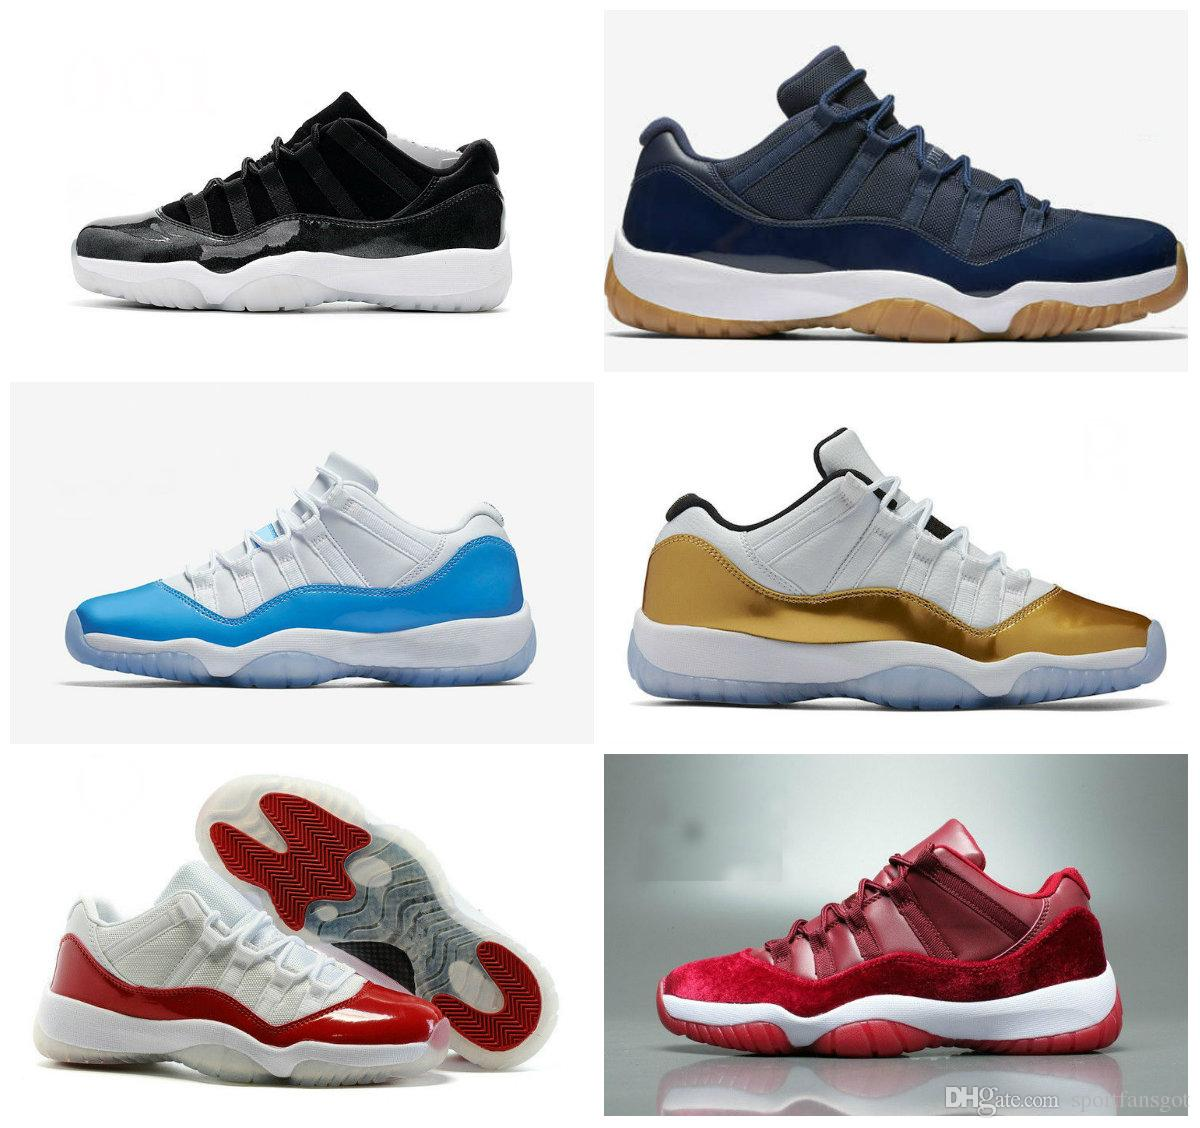 e510b16bc1d Retr 11 Low White Red Navy Gum Basketball Shoes Bred Georgetown Space Jam  Citrus GS Basketball Sneakers Women Men 11s Low Athletic XI Shoes Online  Walking ...